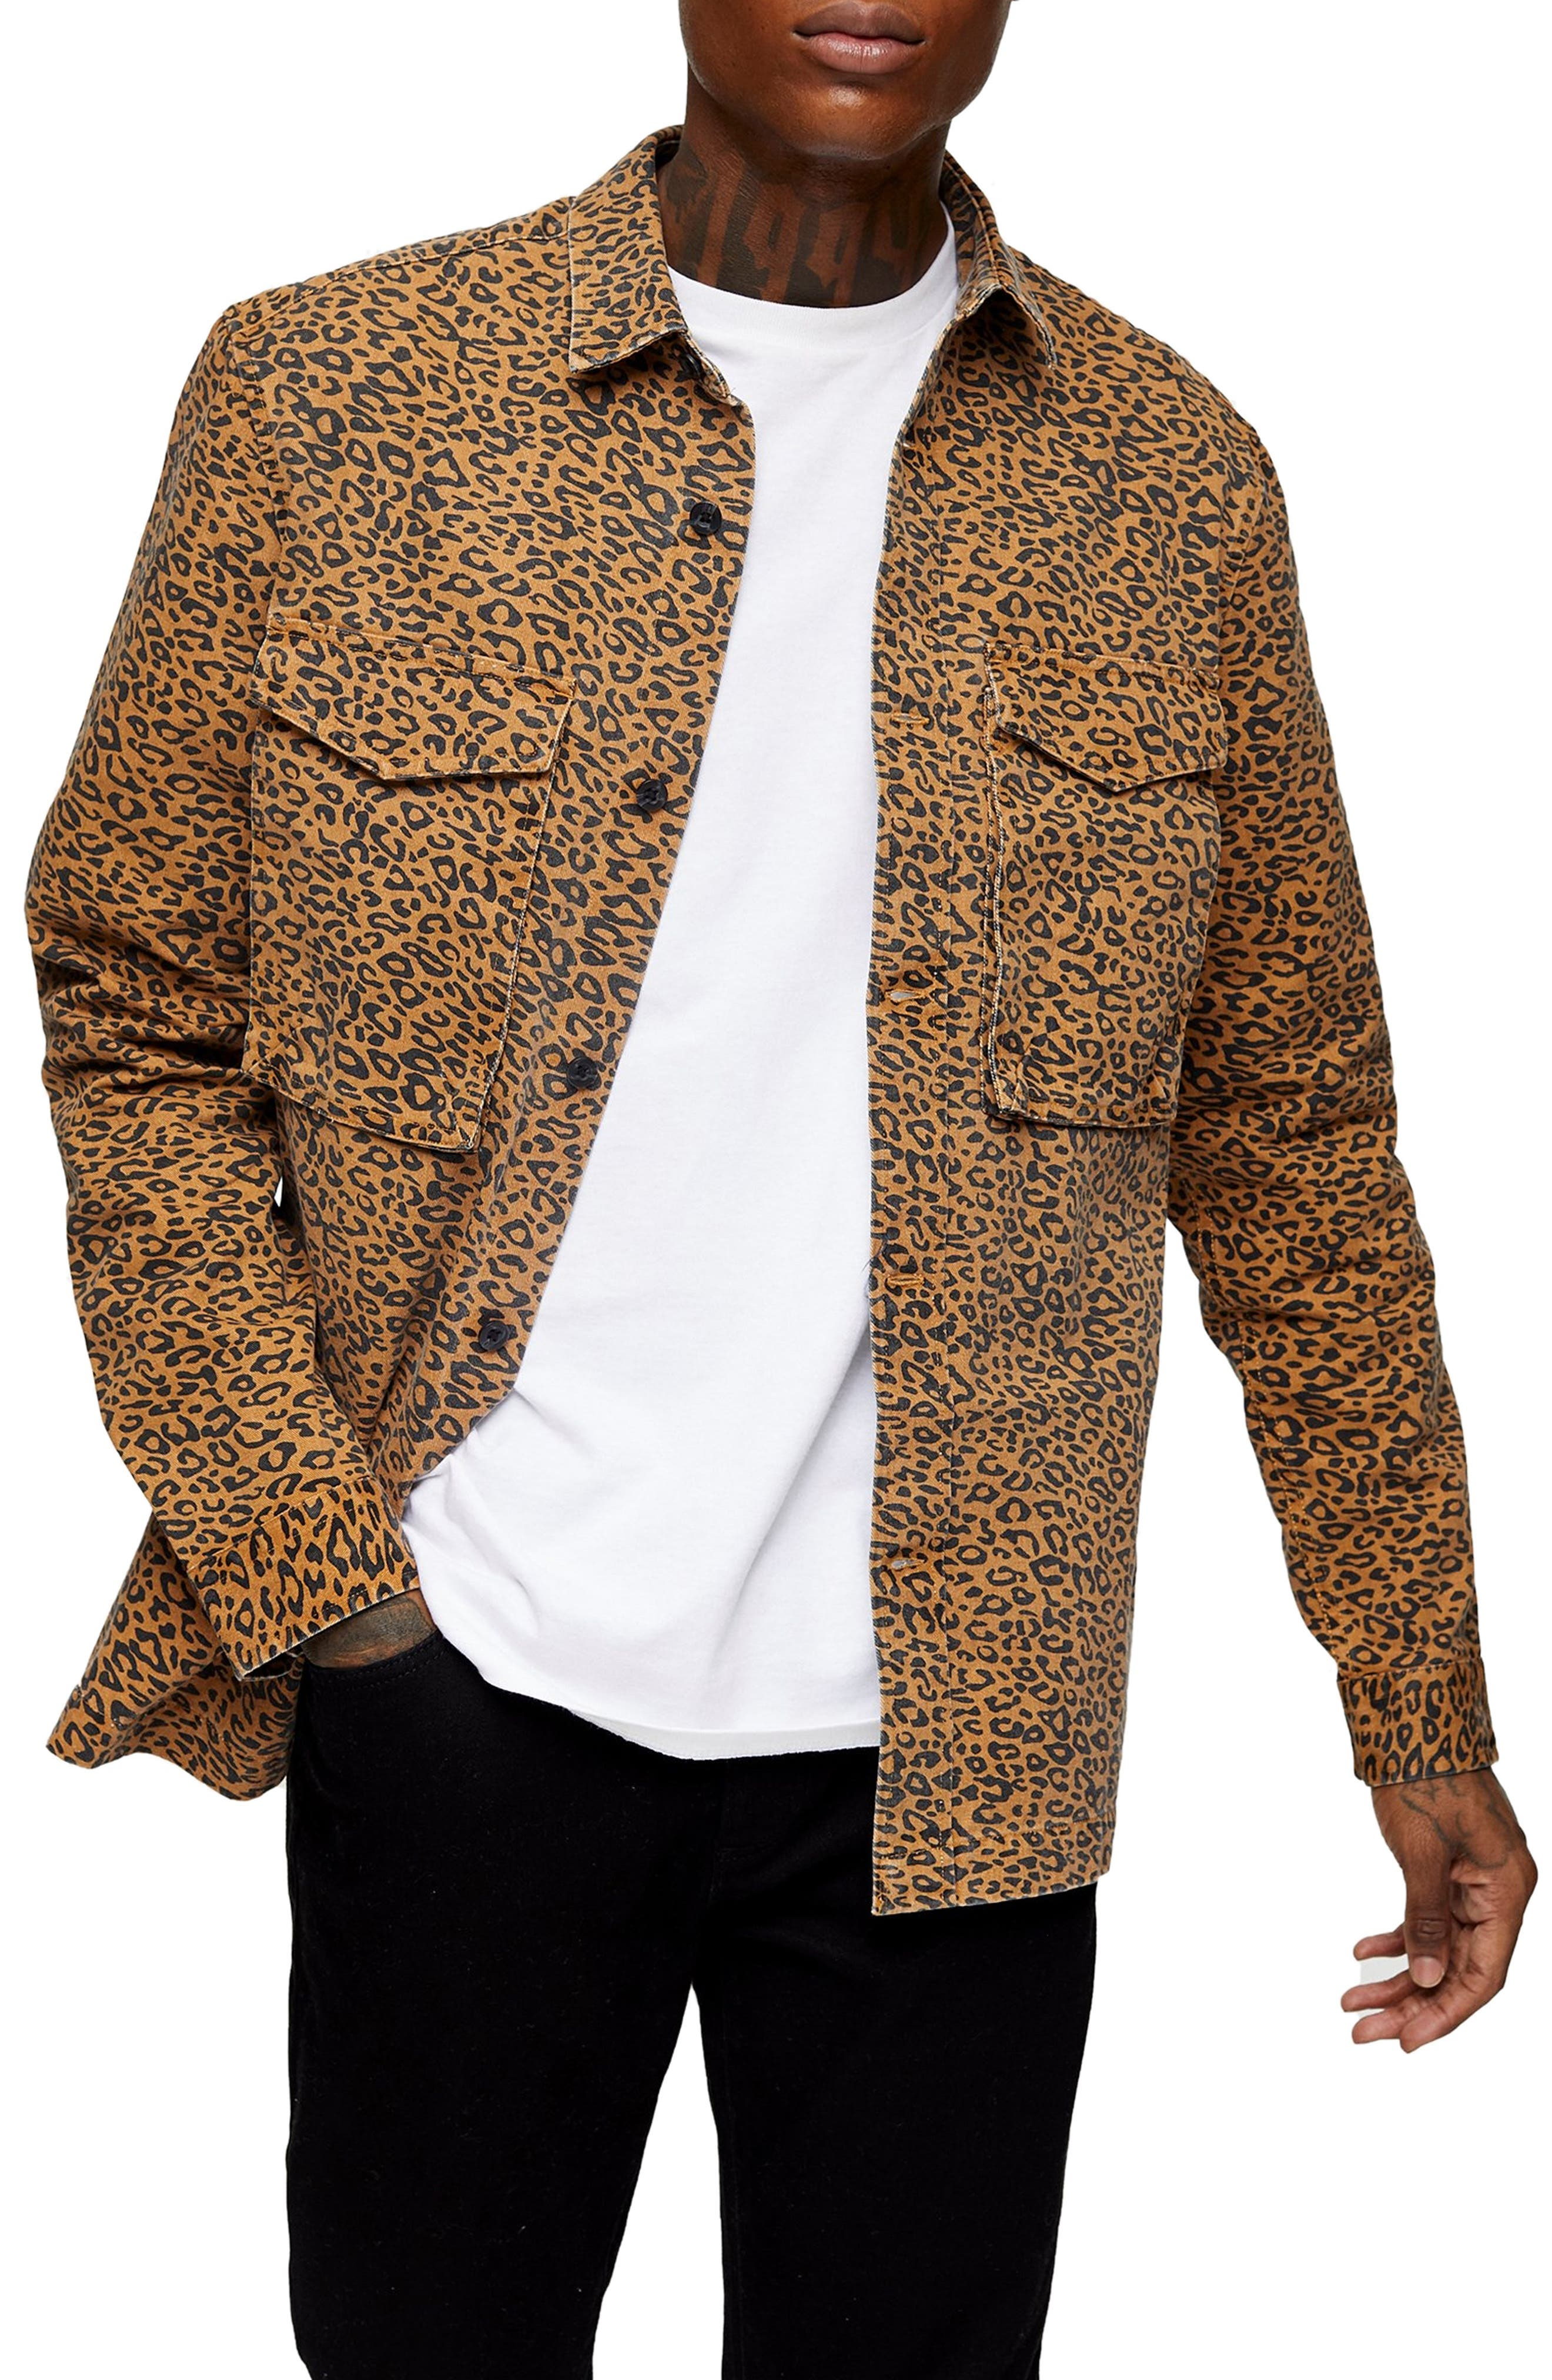 Wild leopard spots embolden this durable cotton button-up that\\\'s both polished and edgy at the same time. Style Name: Topman Leopard Print Overshirt. Style Number: 6092331. Available in stores.